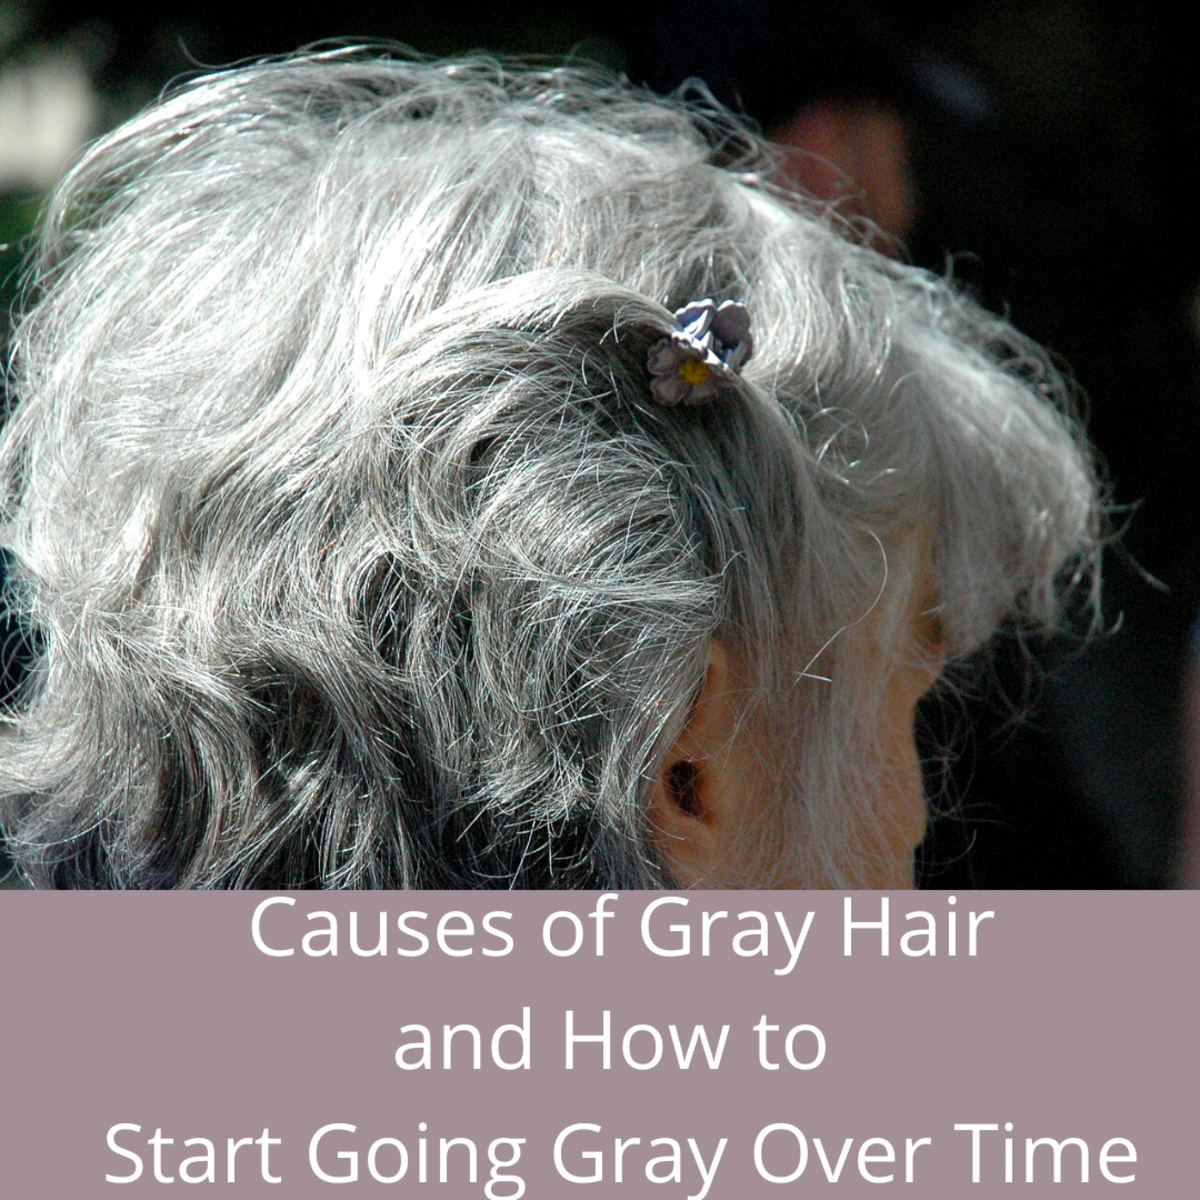 Causes of Gray Hair and How to Start Going Gray Over Time